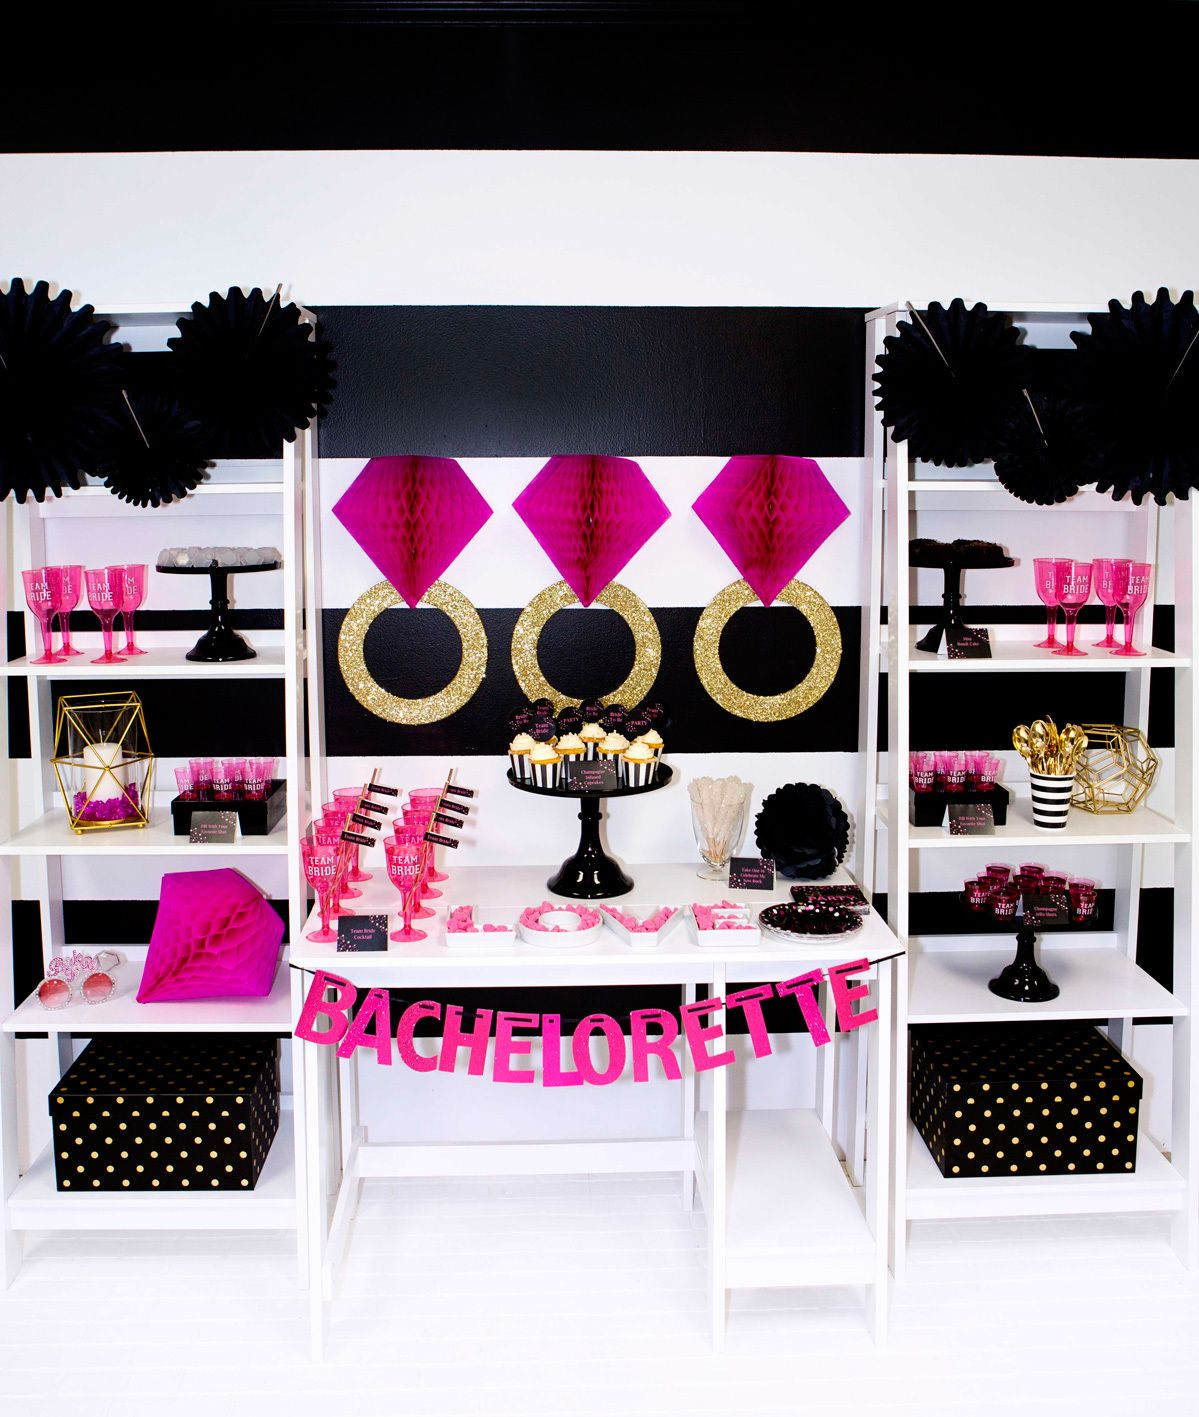 7947a6b265ed Kate Spade Inspired Party - Bachelorette Party Ideas - Black Pink ...